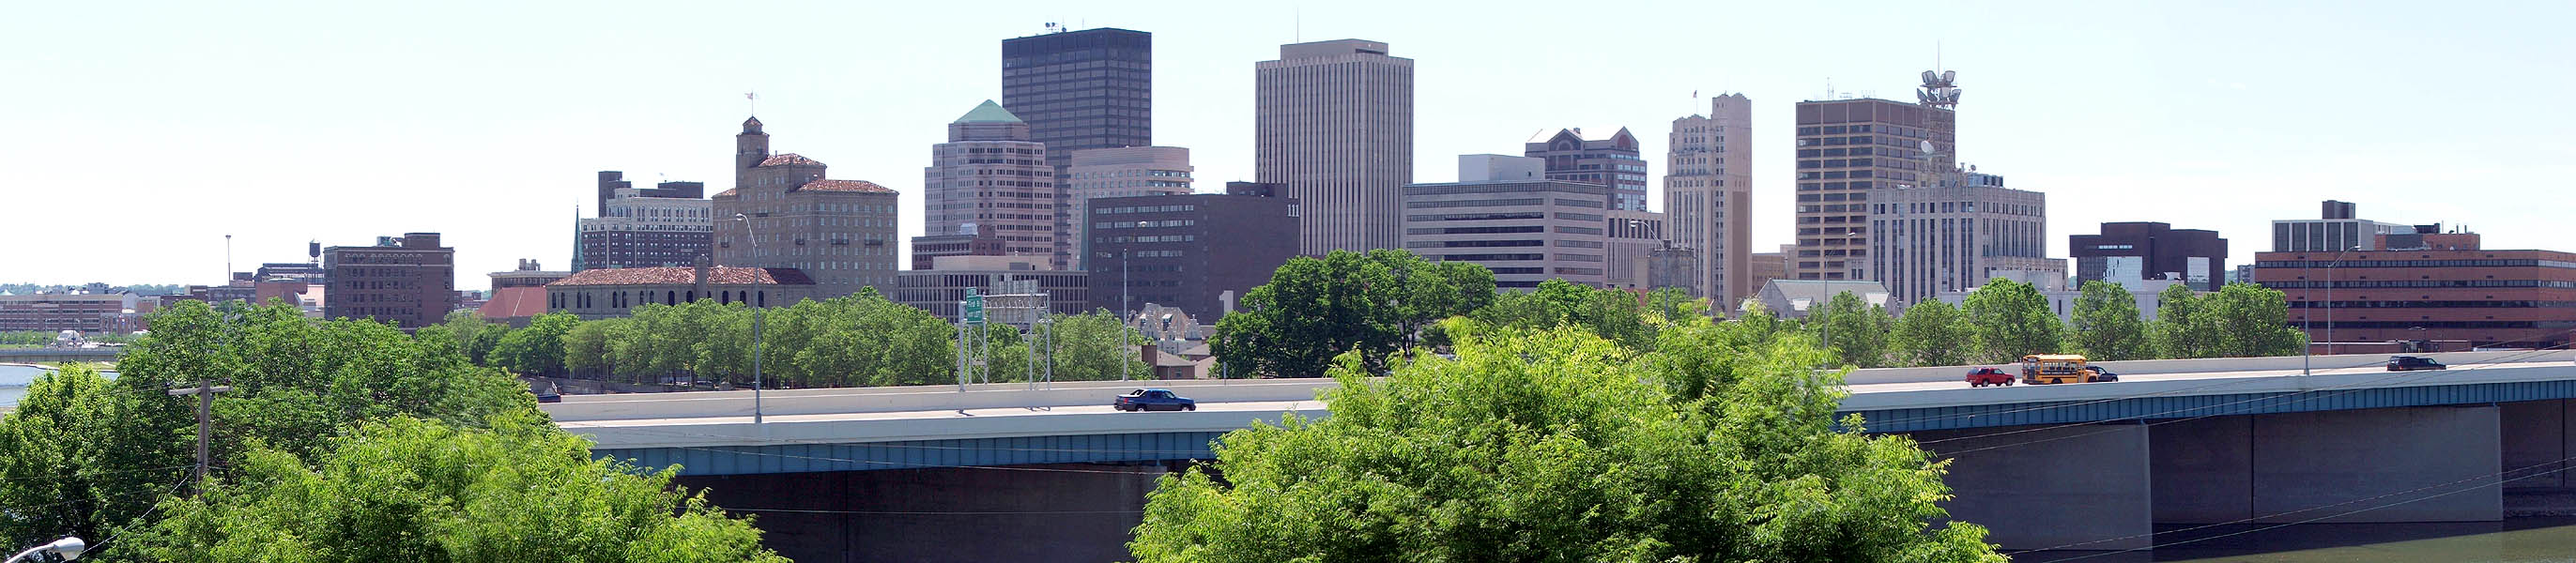 Downtown Dayton in 2007